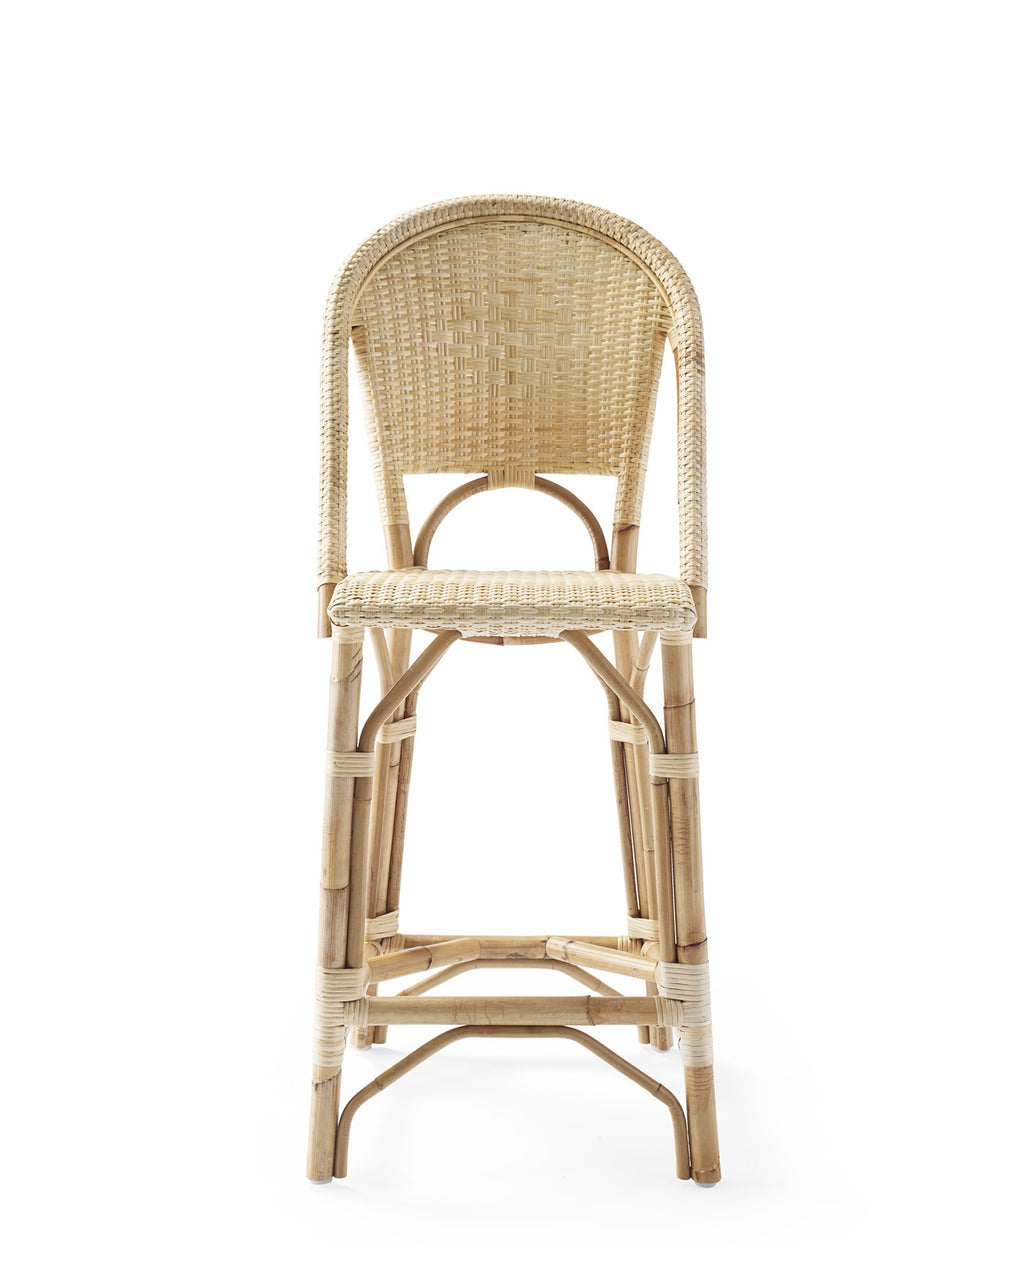 Coastal Rattan Stool - Natural